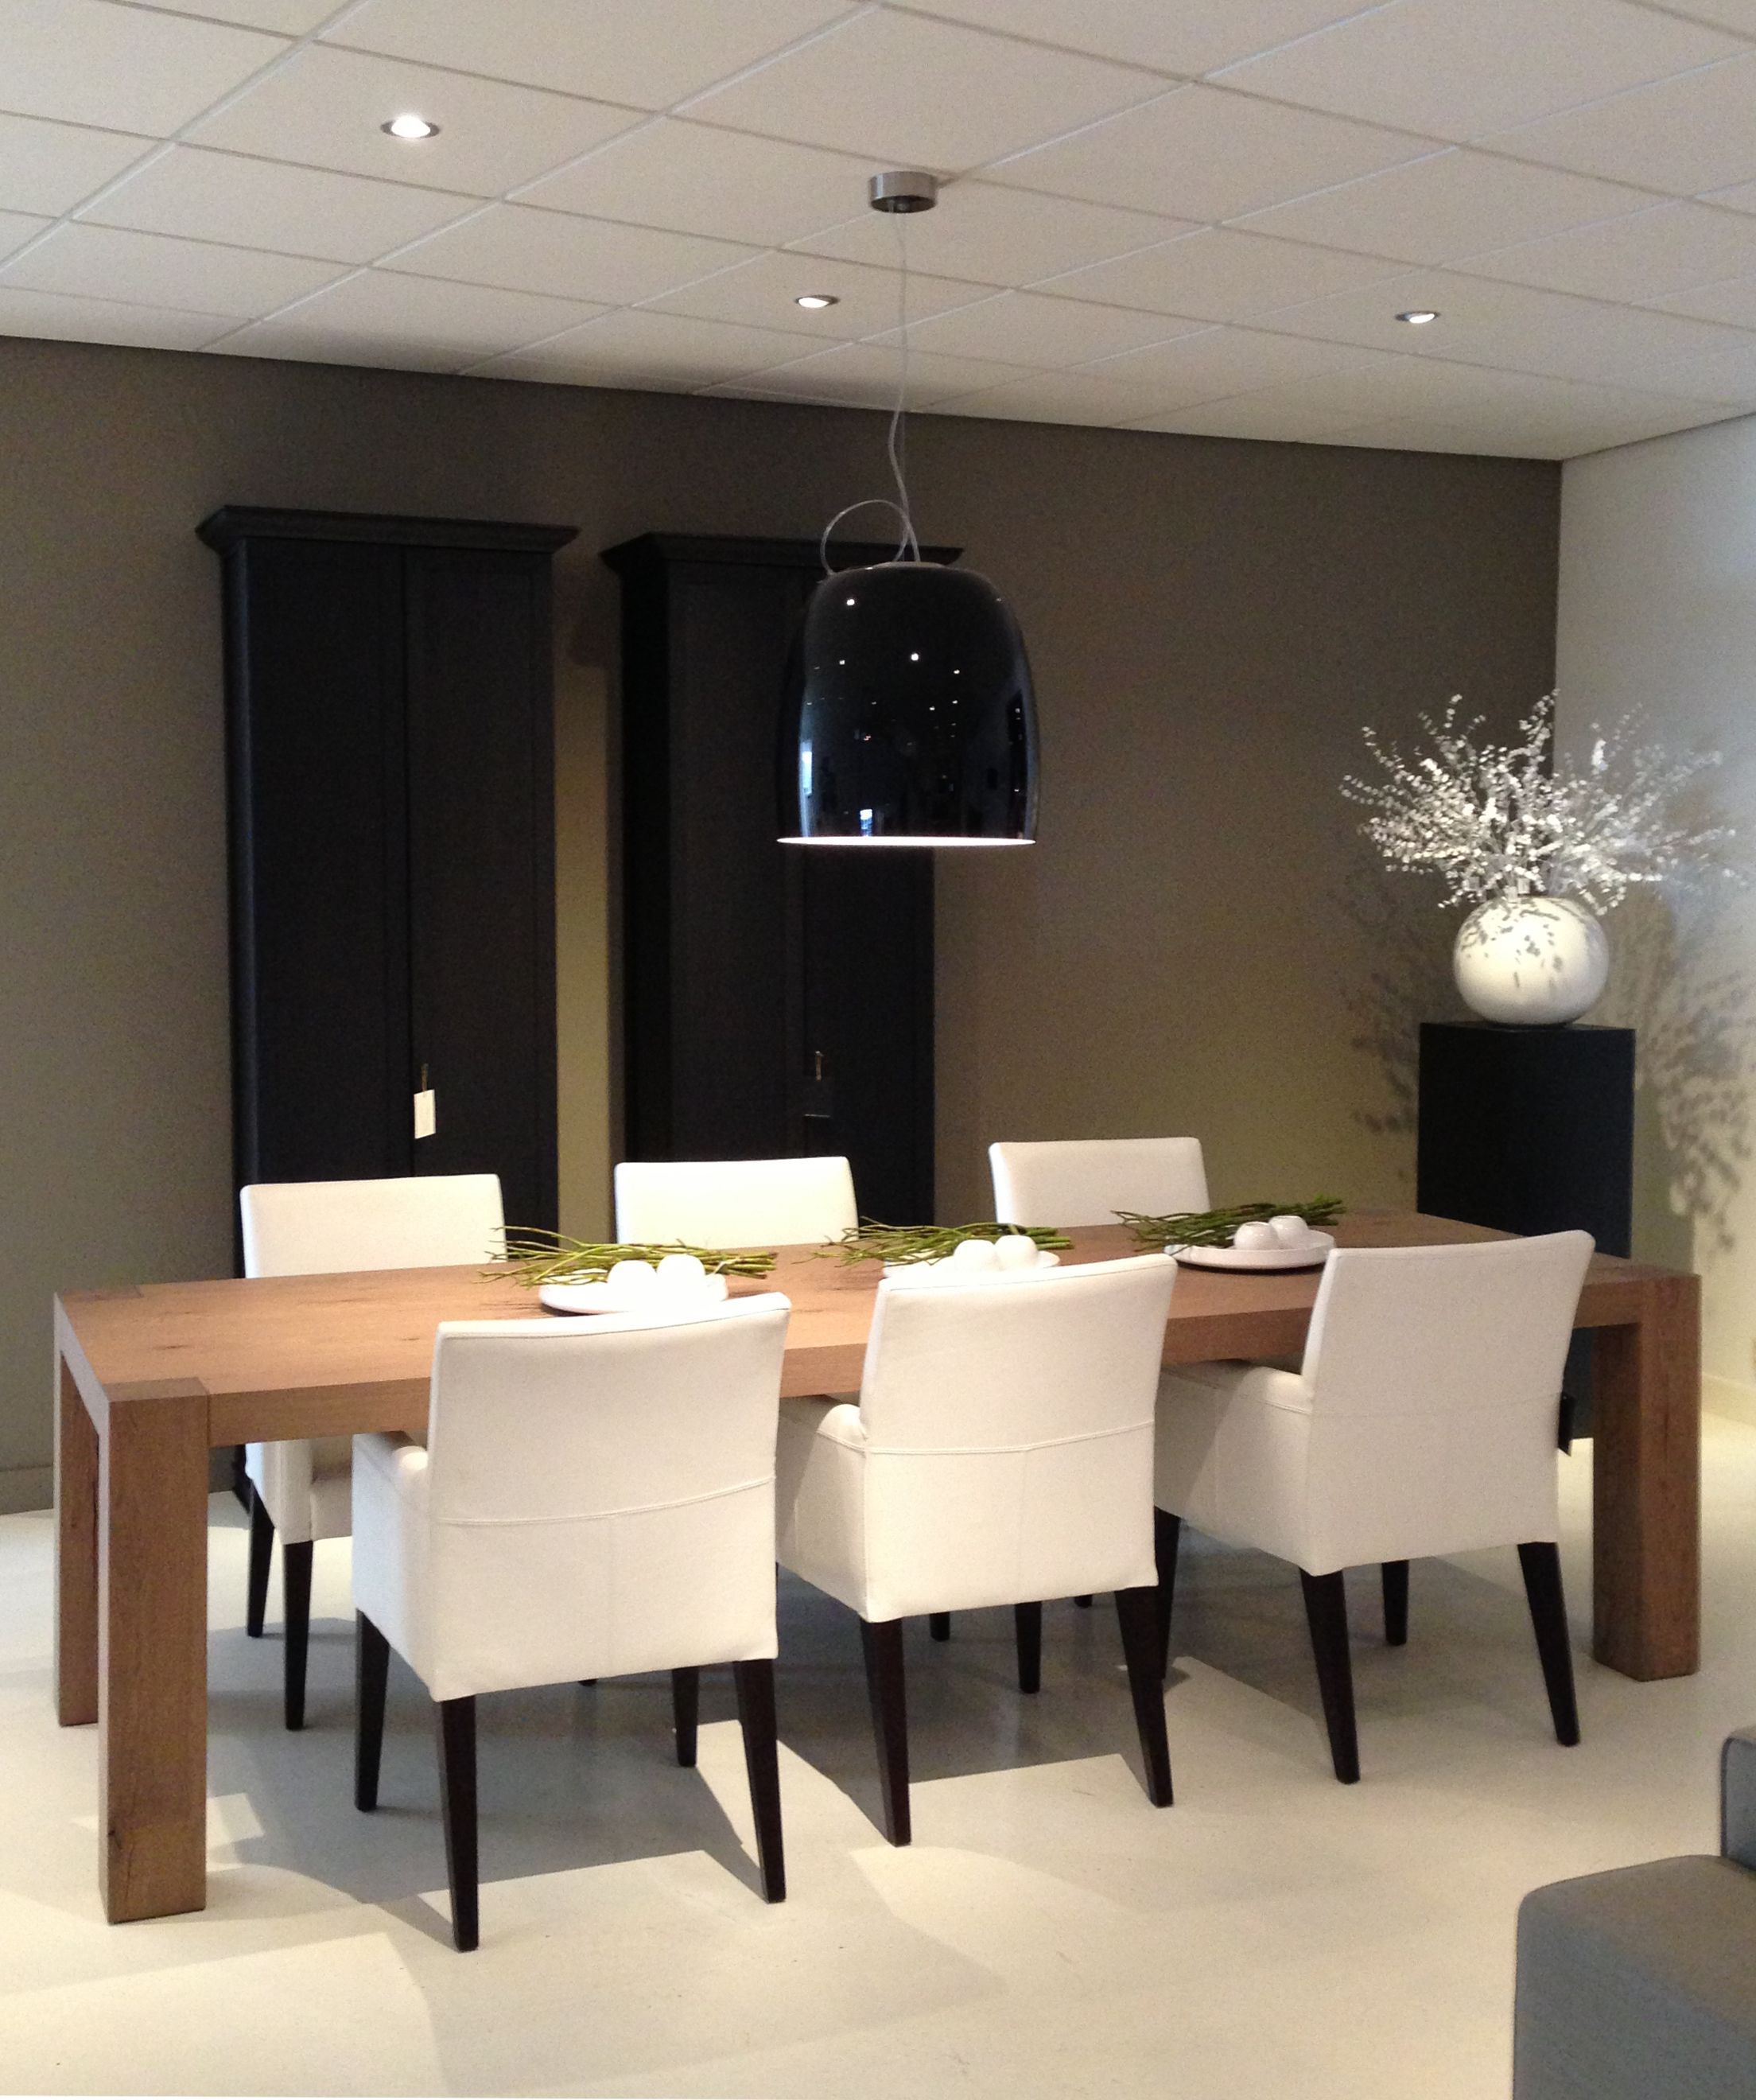 Notte suspension by #Prandina at Thomassen Interieurs in Venray www ...